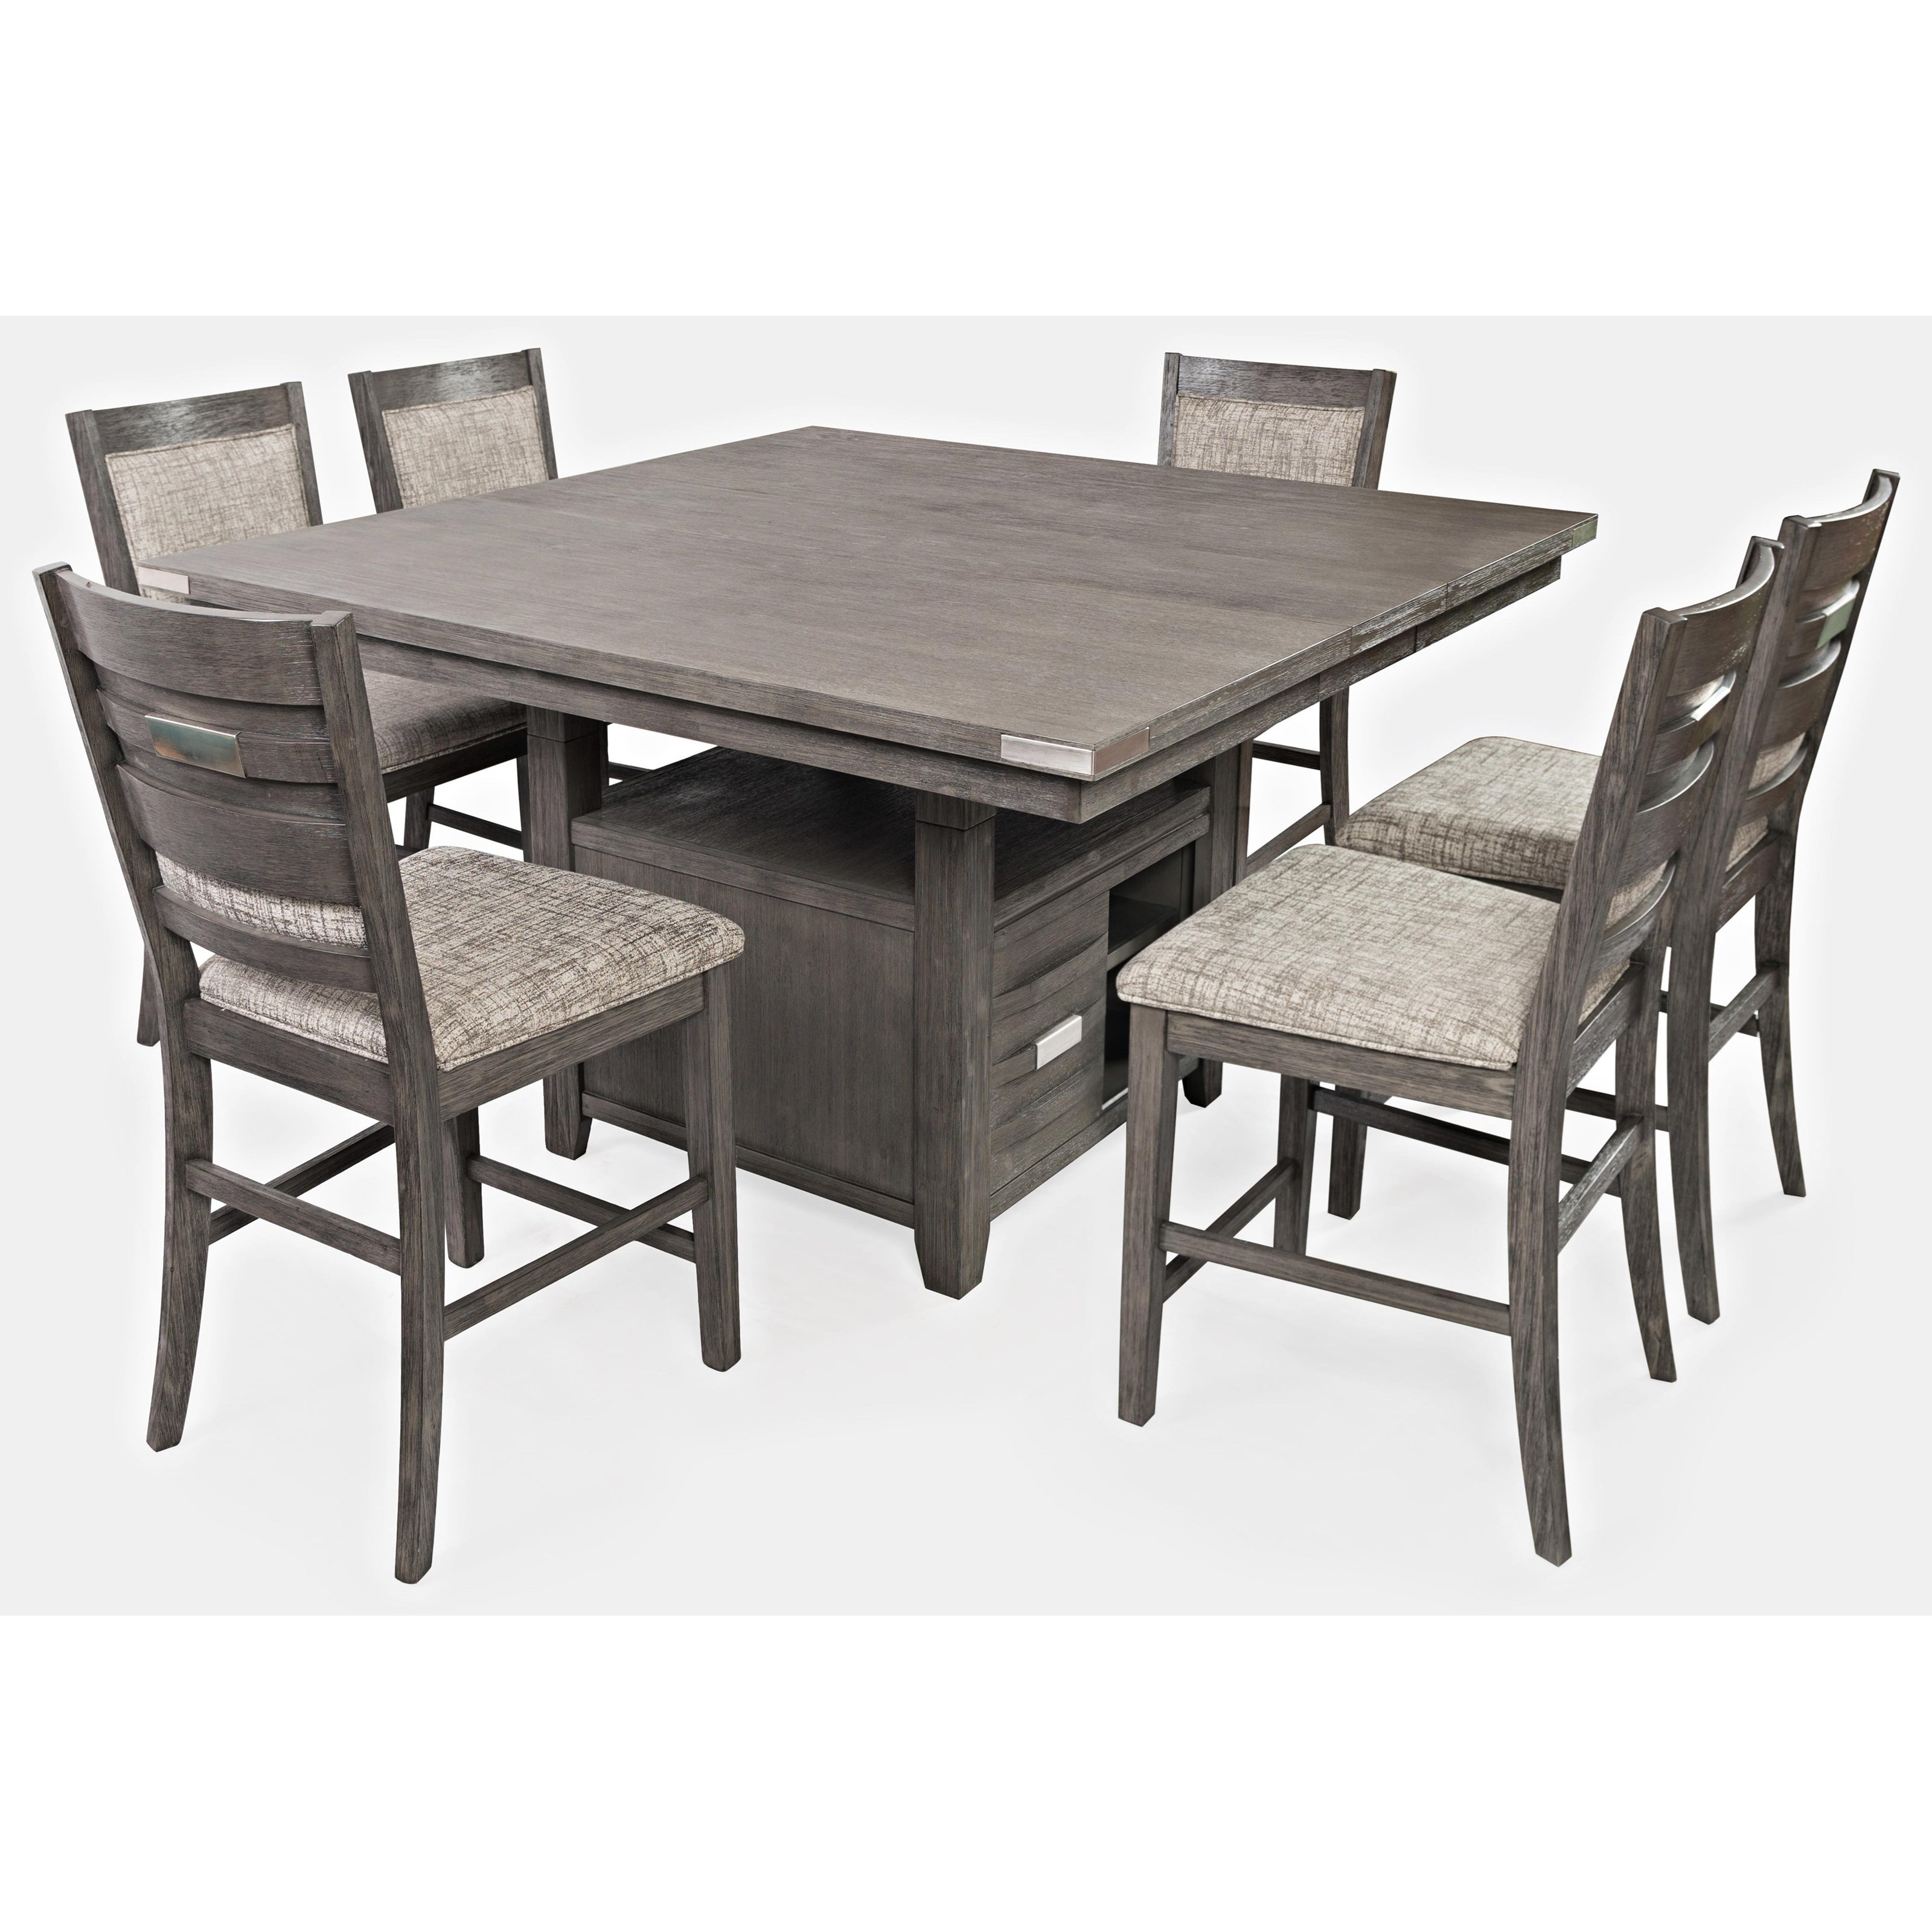 Square Dining Table With Storage Jofran Altamonte Square Dining W Storage Base Value City